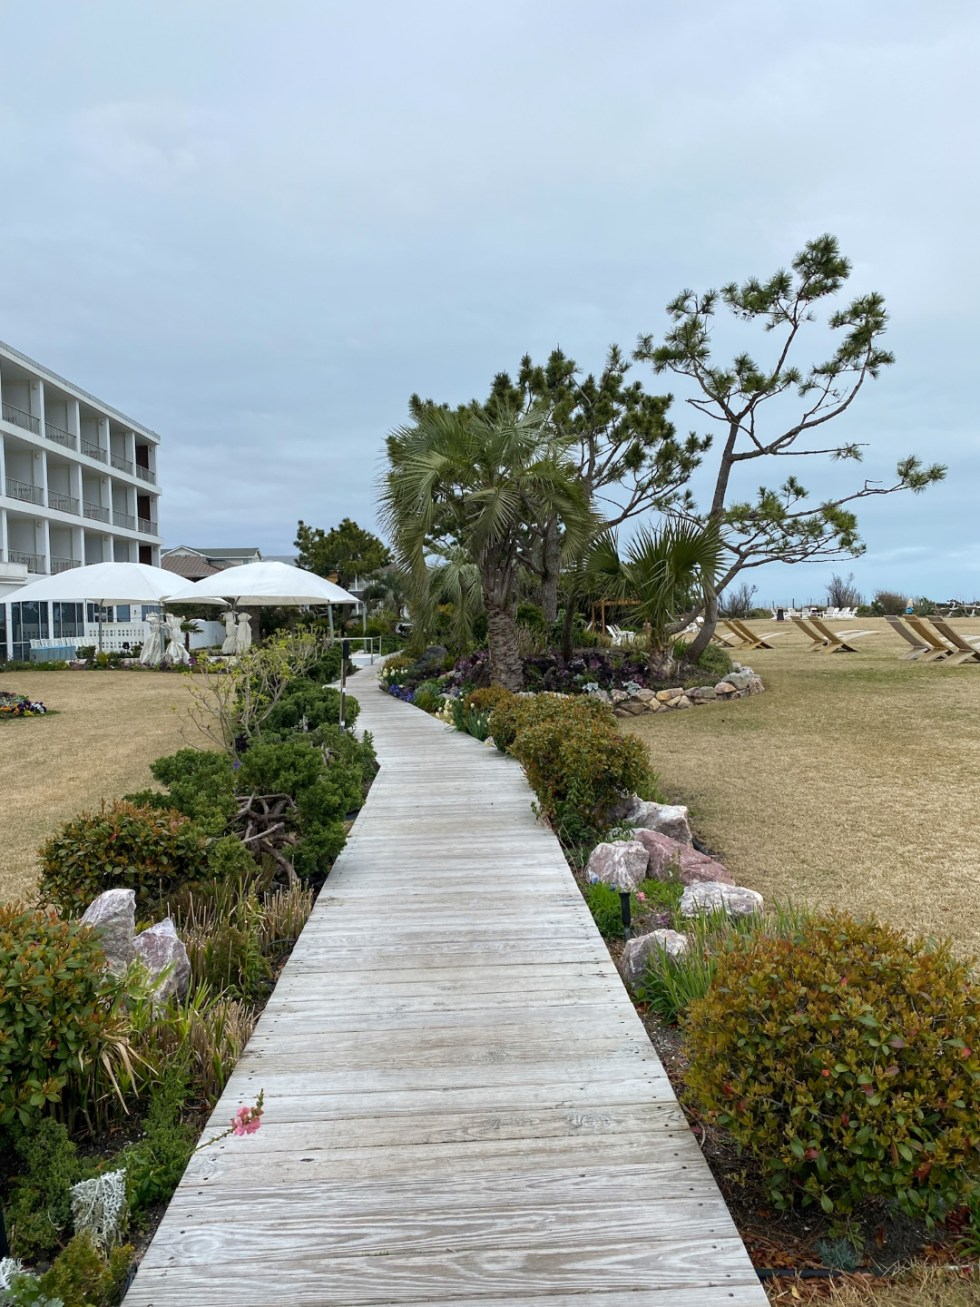 A Spring Weekend in Wilmington, NC: the Best Things to Do - I'm Fixin' To - @imfixintoblog |Weekend in Wilmington by popular NC travel blog, I'm Fixin' To: image of a wooden boardwalk.